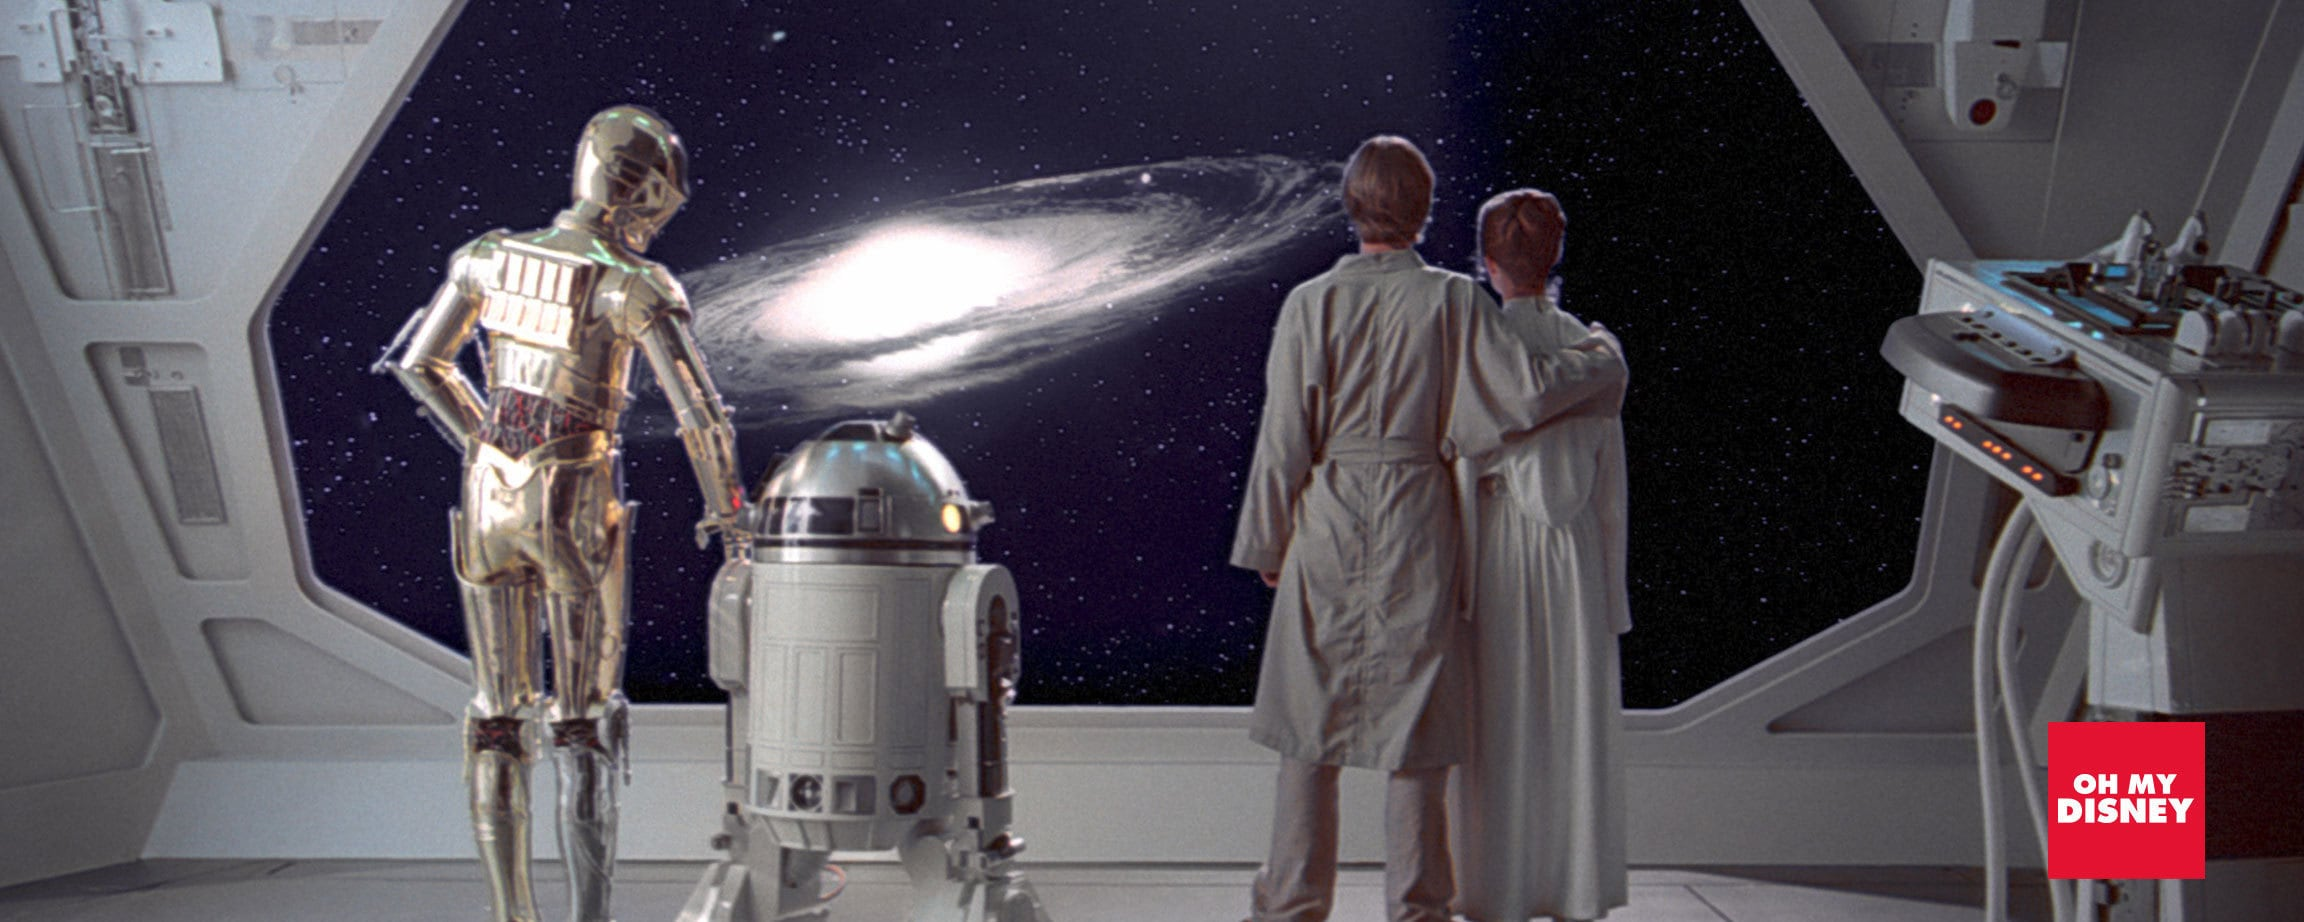 C-3PO, R2-D2, Luke Skywalker and Princess Leia Organa in 'Star Wars: The Empire Strikes Back'